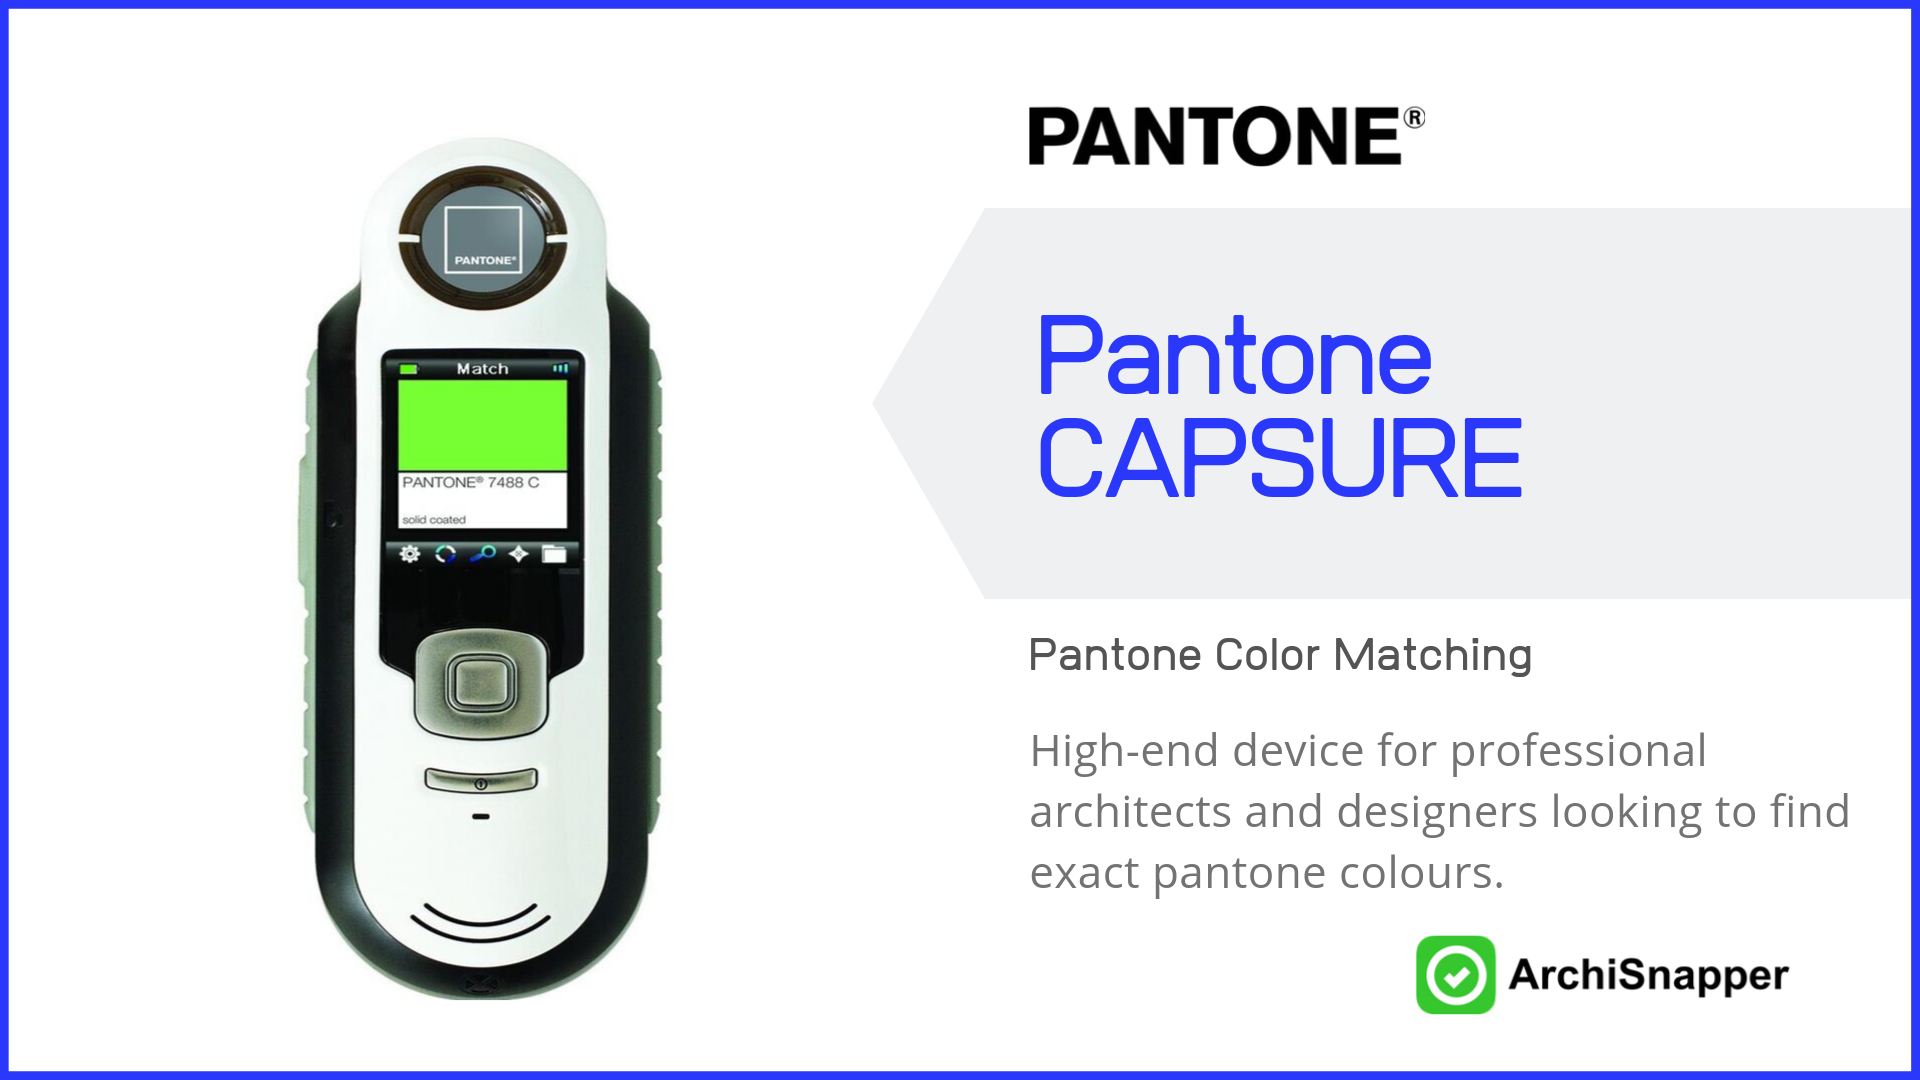 Pantone CAPSURE List of the 15 must-have tech tools and accessories ideal for architects presented by Archisnapper